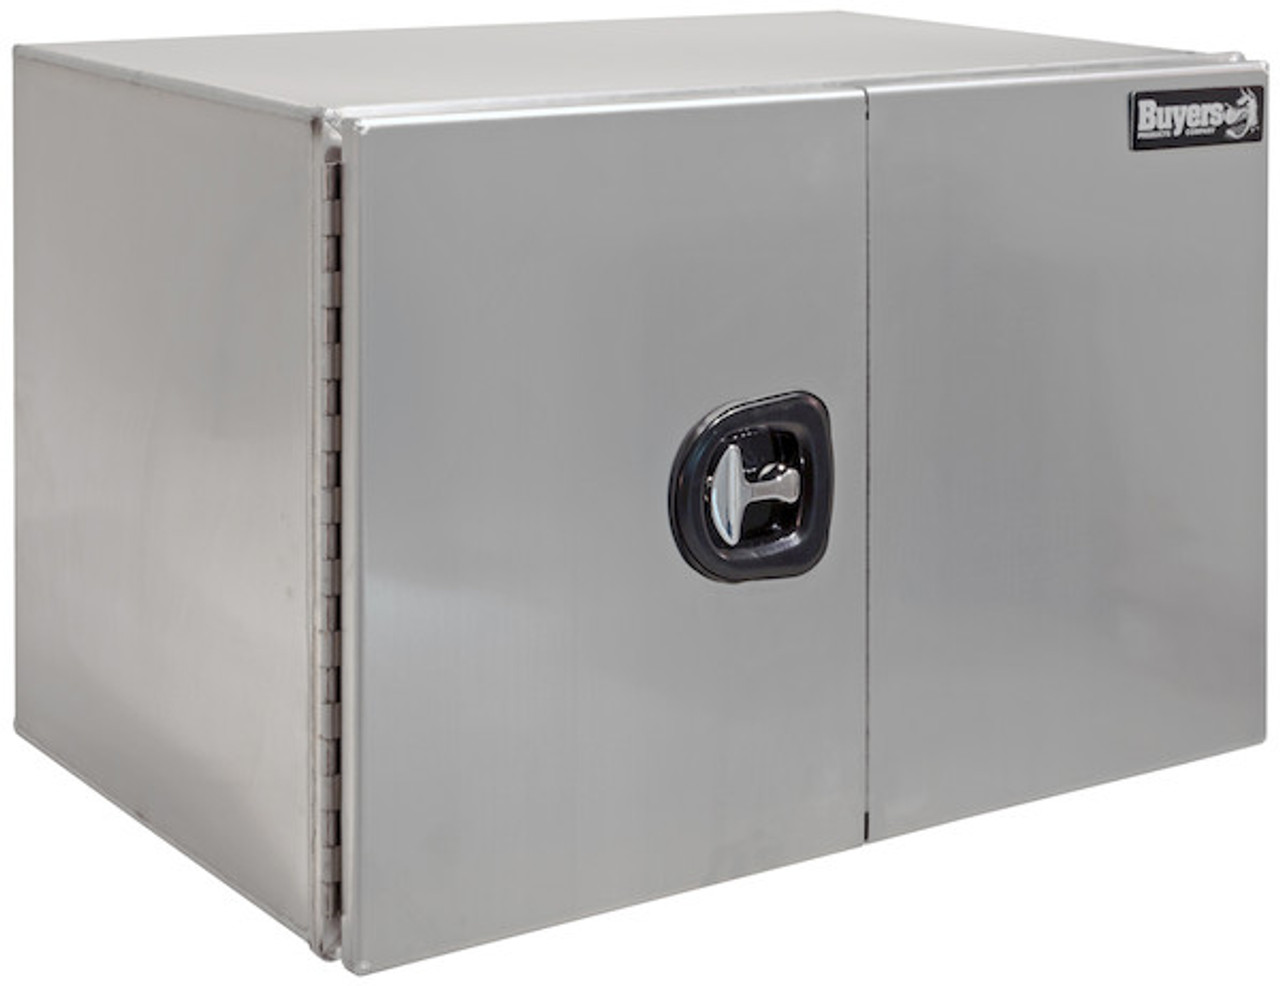 "1705425 BUYERS PRODUCTS XD SMOOTH ALUMINUM UNDERBODY TOOLBOX WITH BARN DOOR 18""HX24""DX48""W"